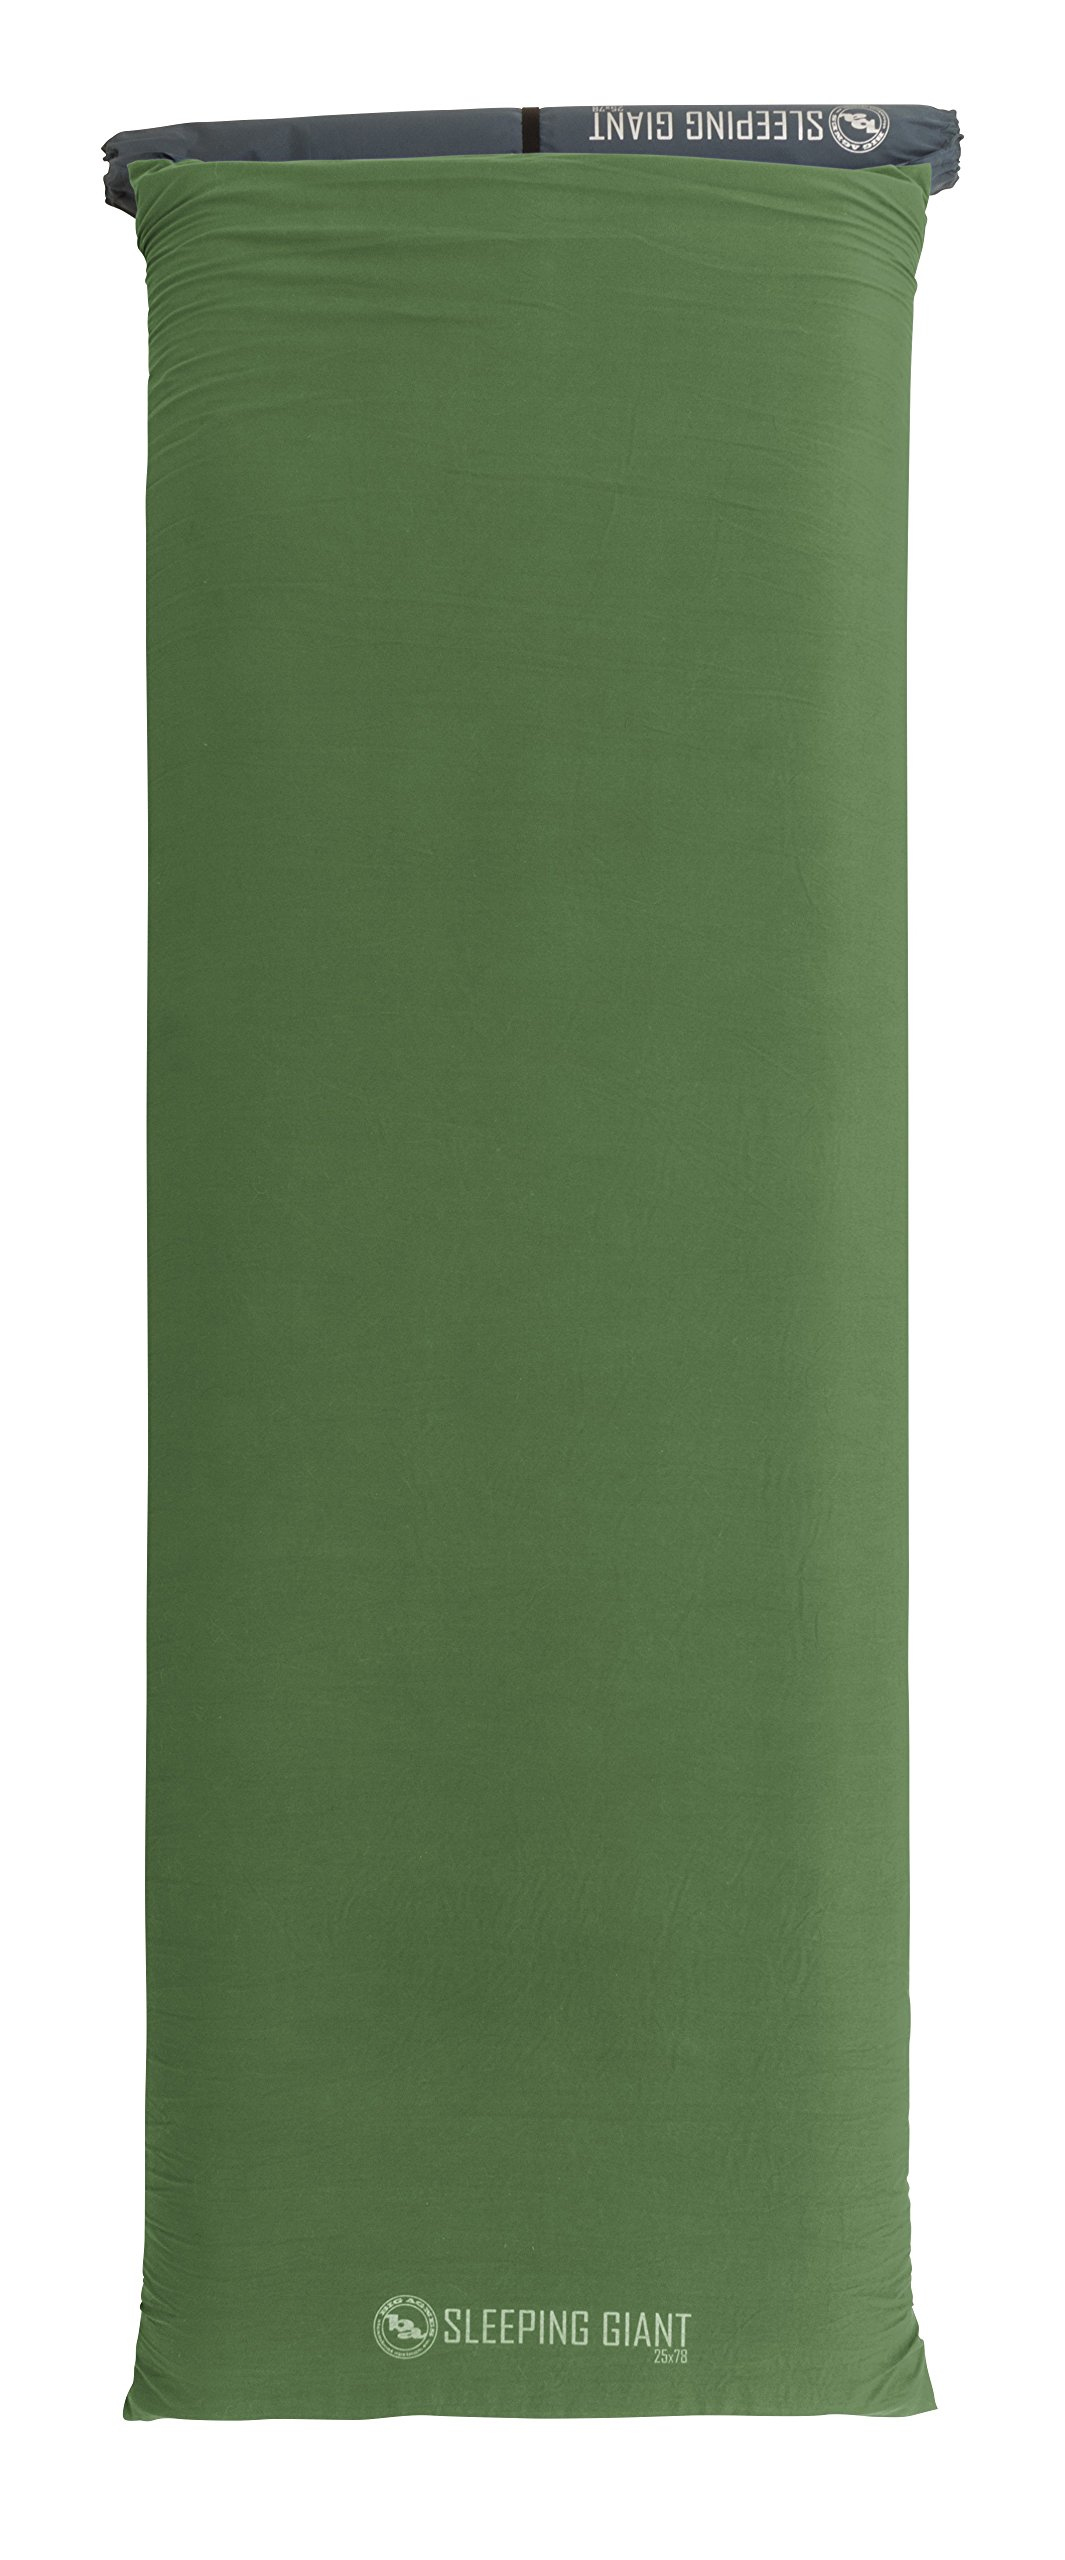 Big Agnes Sleeping Giant Memory Foam Pad Cover, Green/Blue, 25x78 Wide Long by Big Agnes